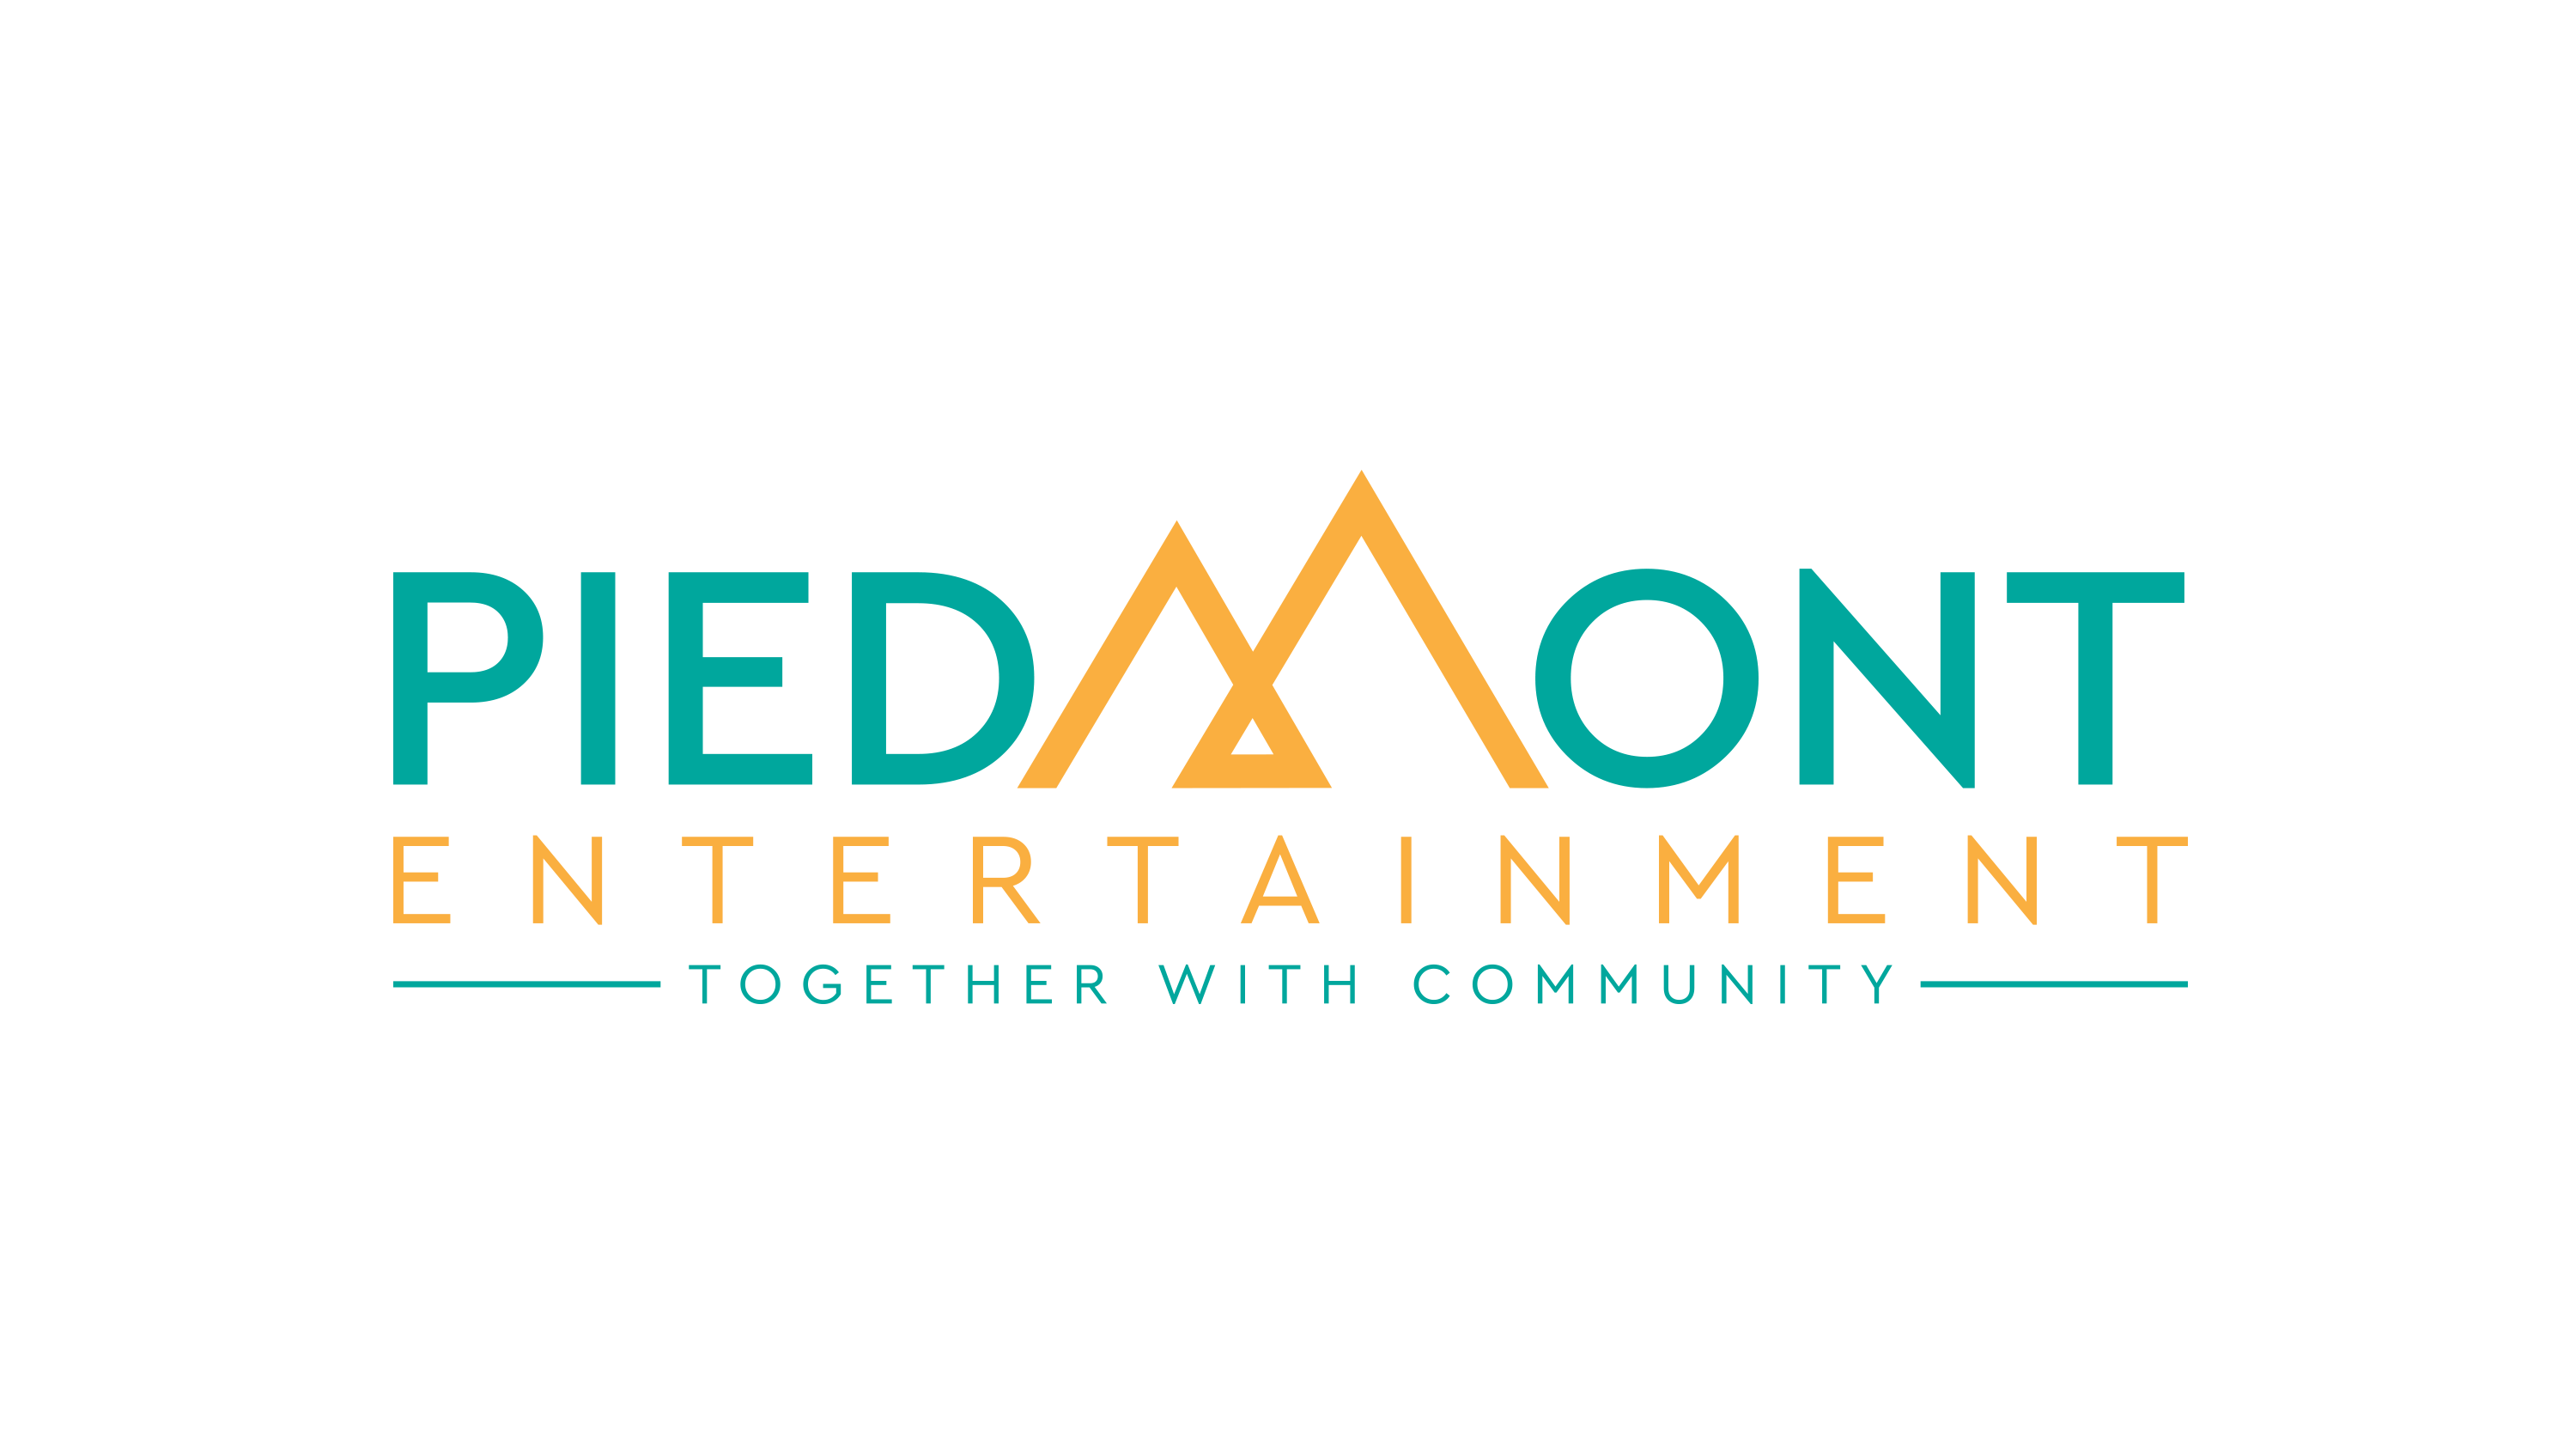 Piedmont Entertainment